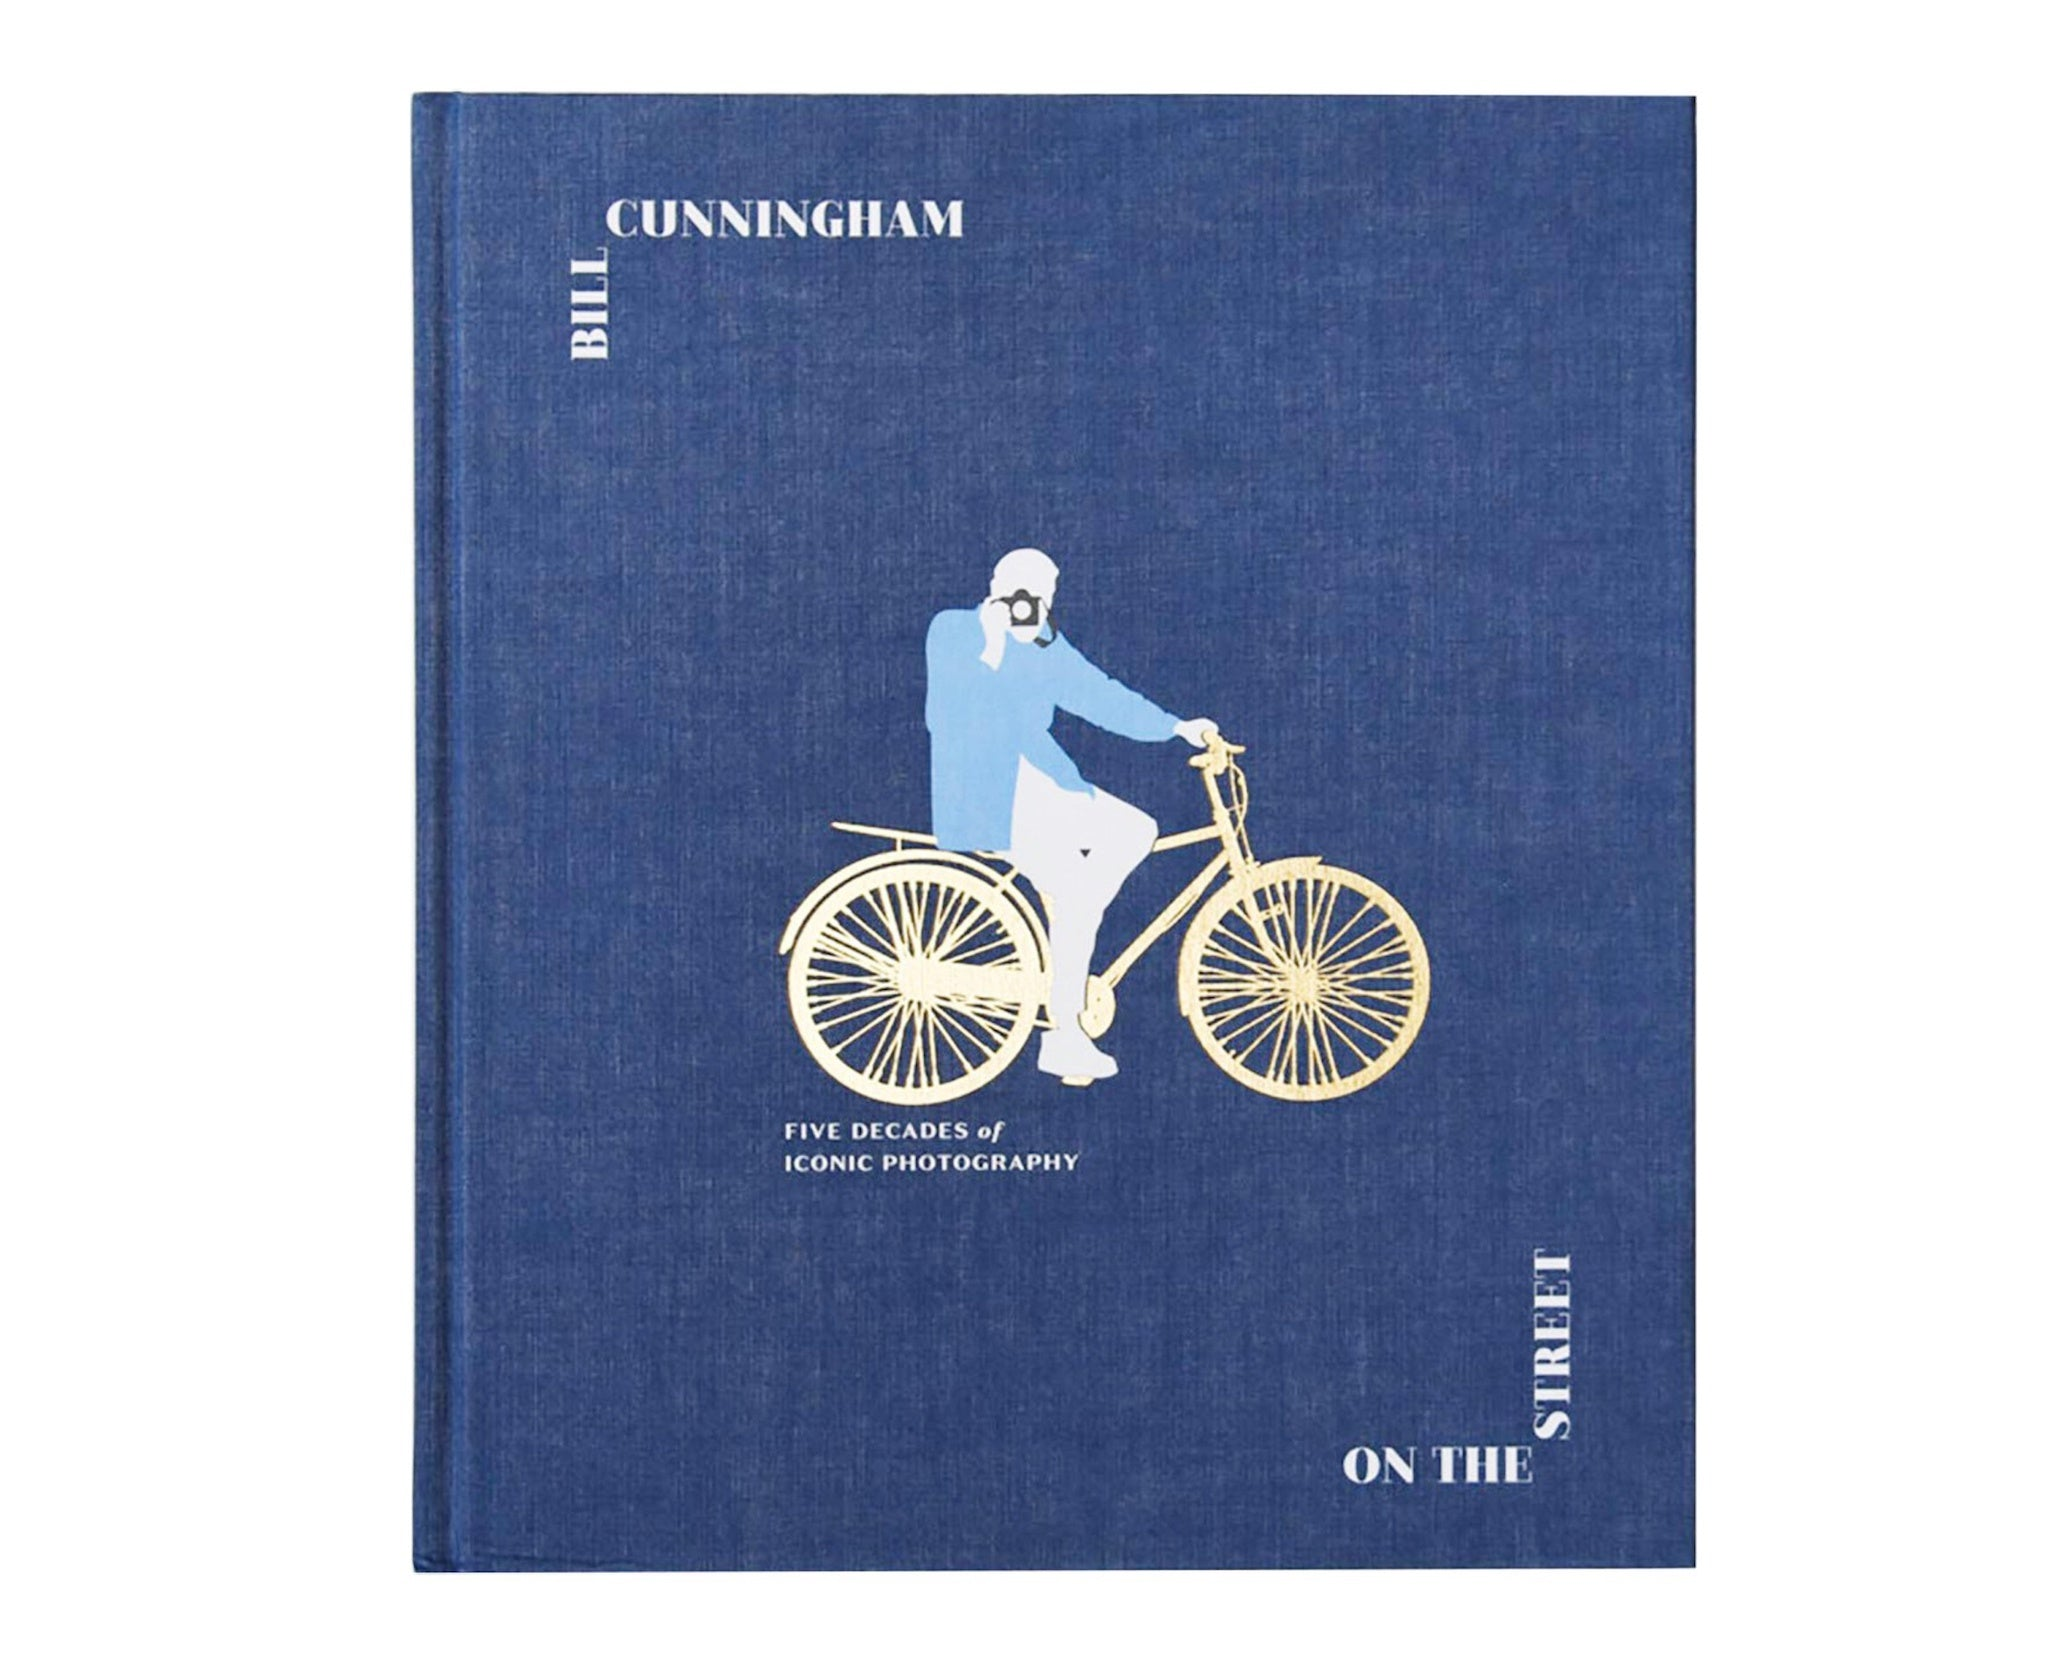 Books Bill Cunningham: On the Street - Five Decades of Iconic Photography